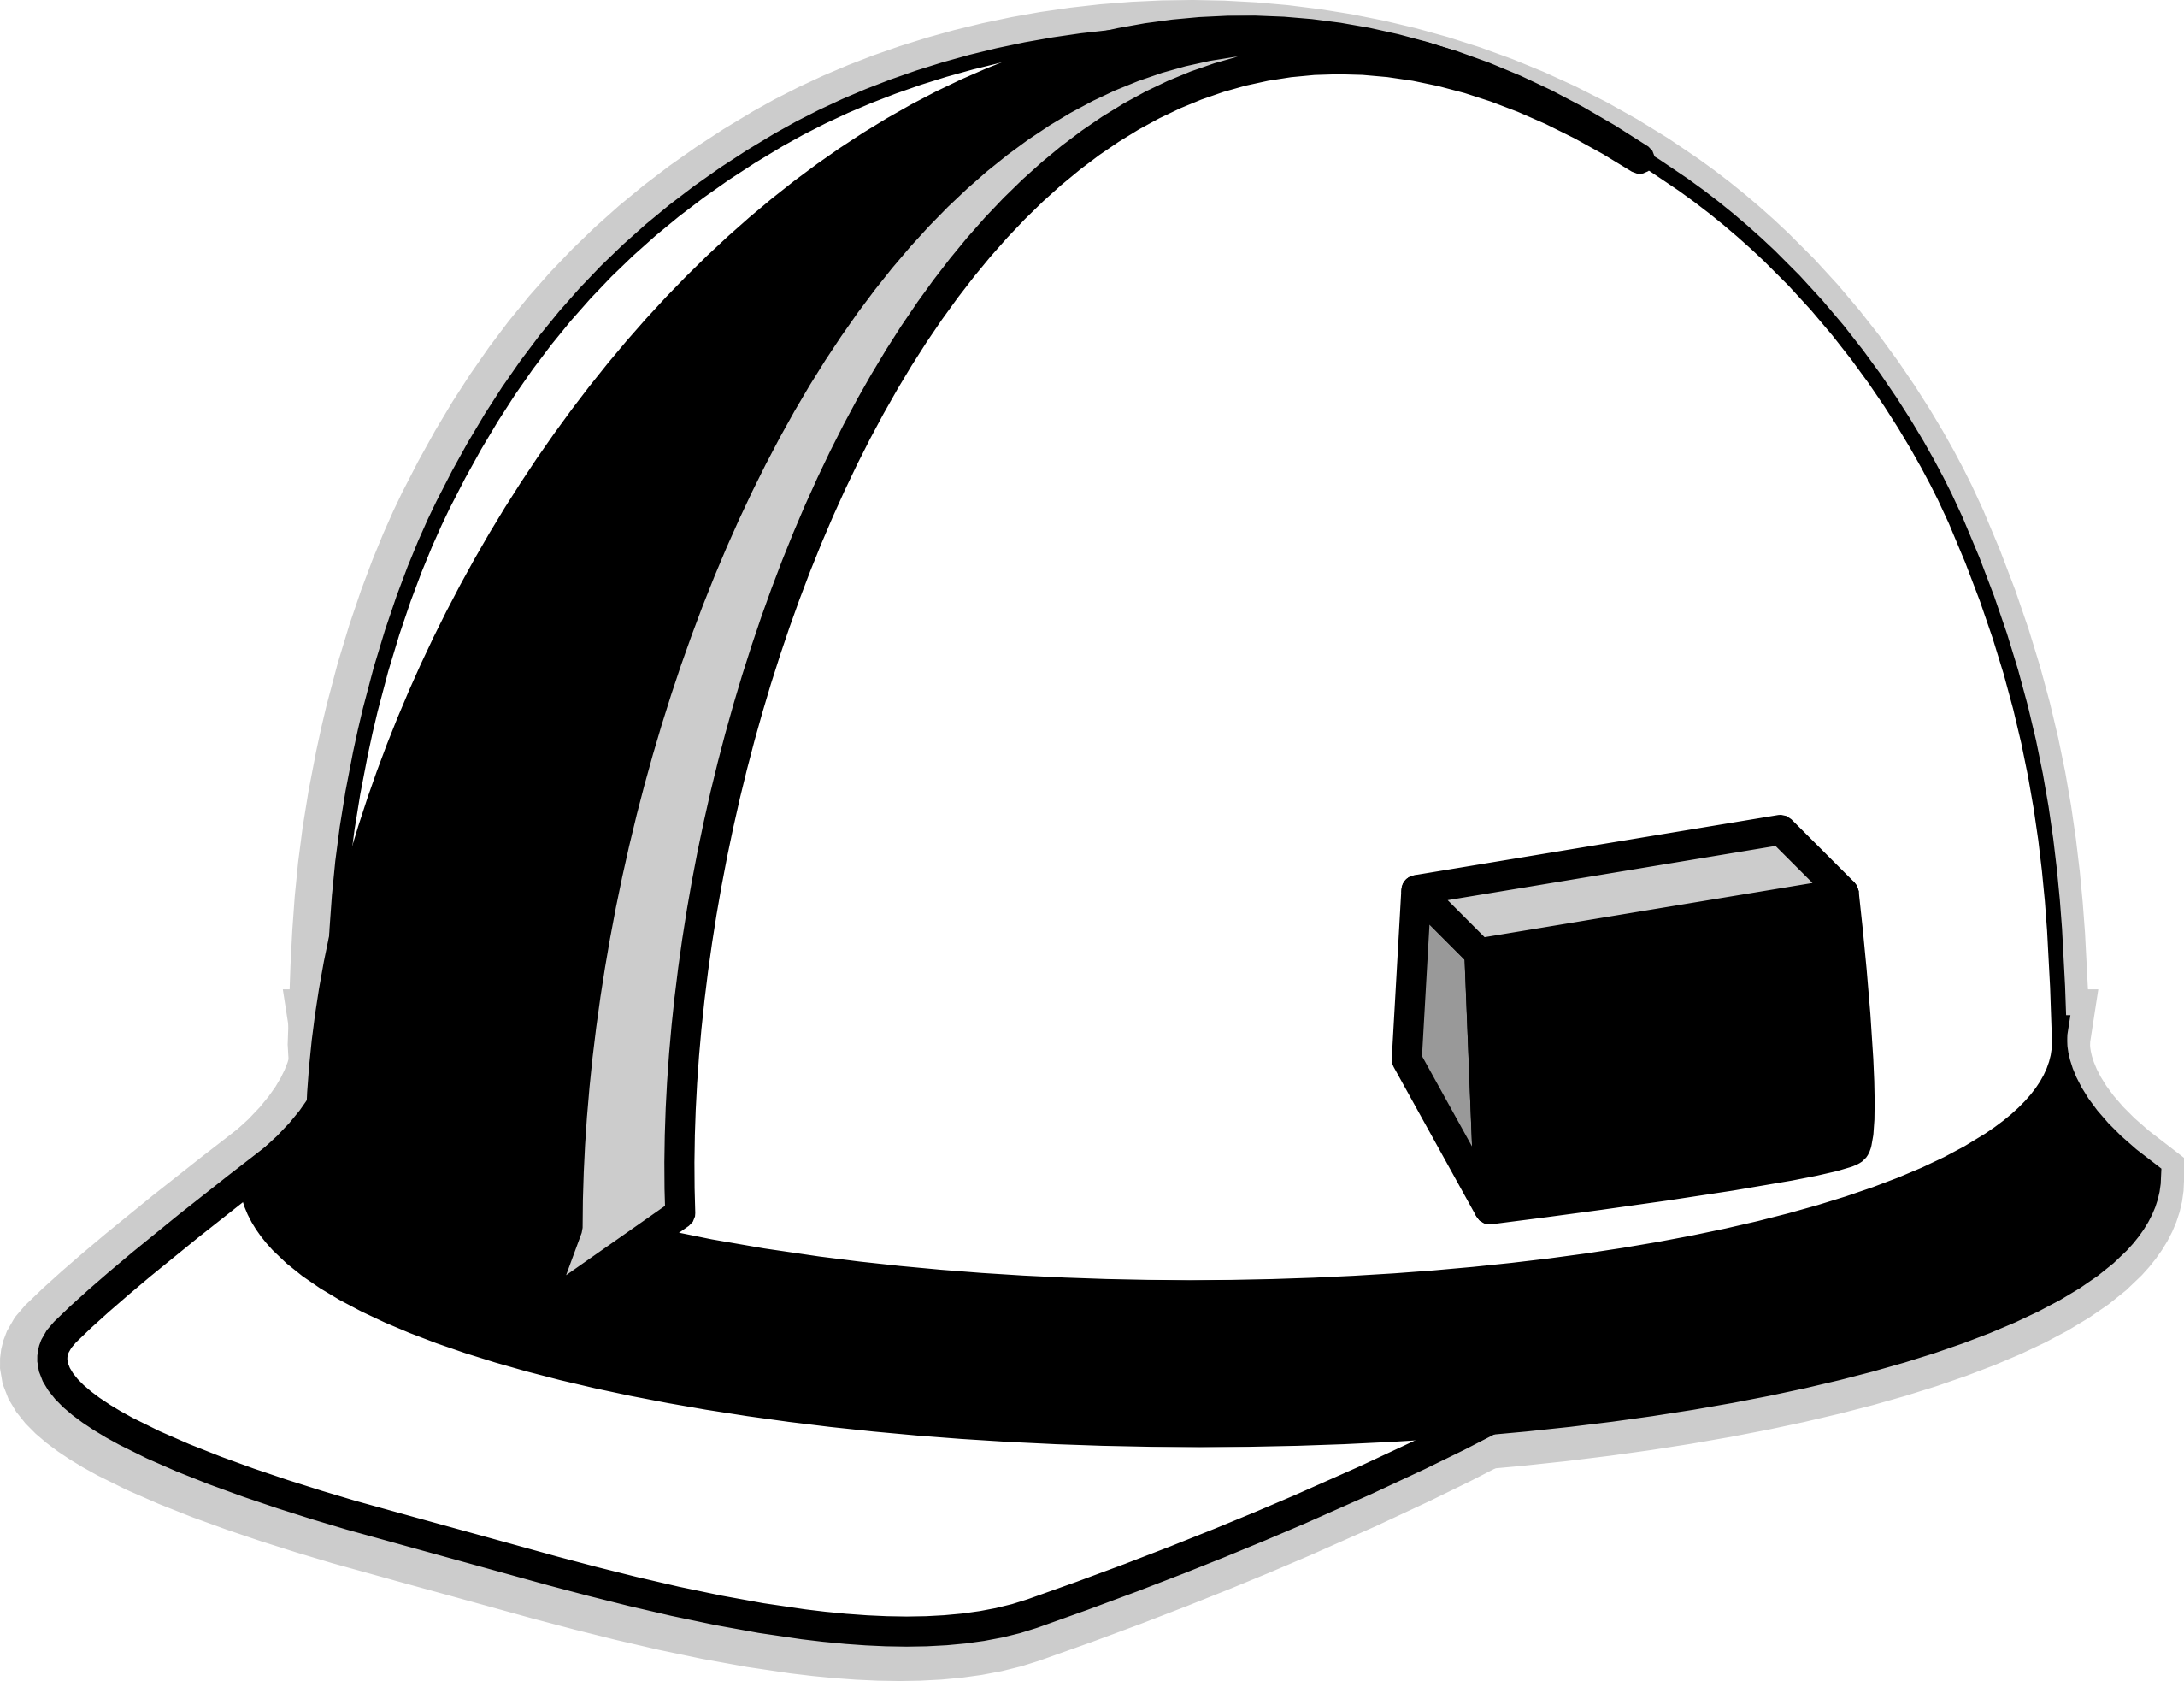 Souped up car clipart jpg black and white Hard Hat Art Image Group (49+) jpg black and white